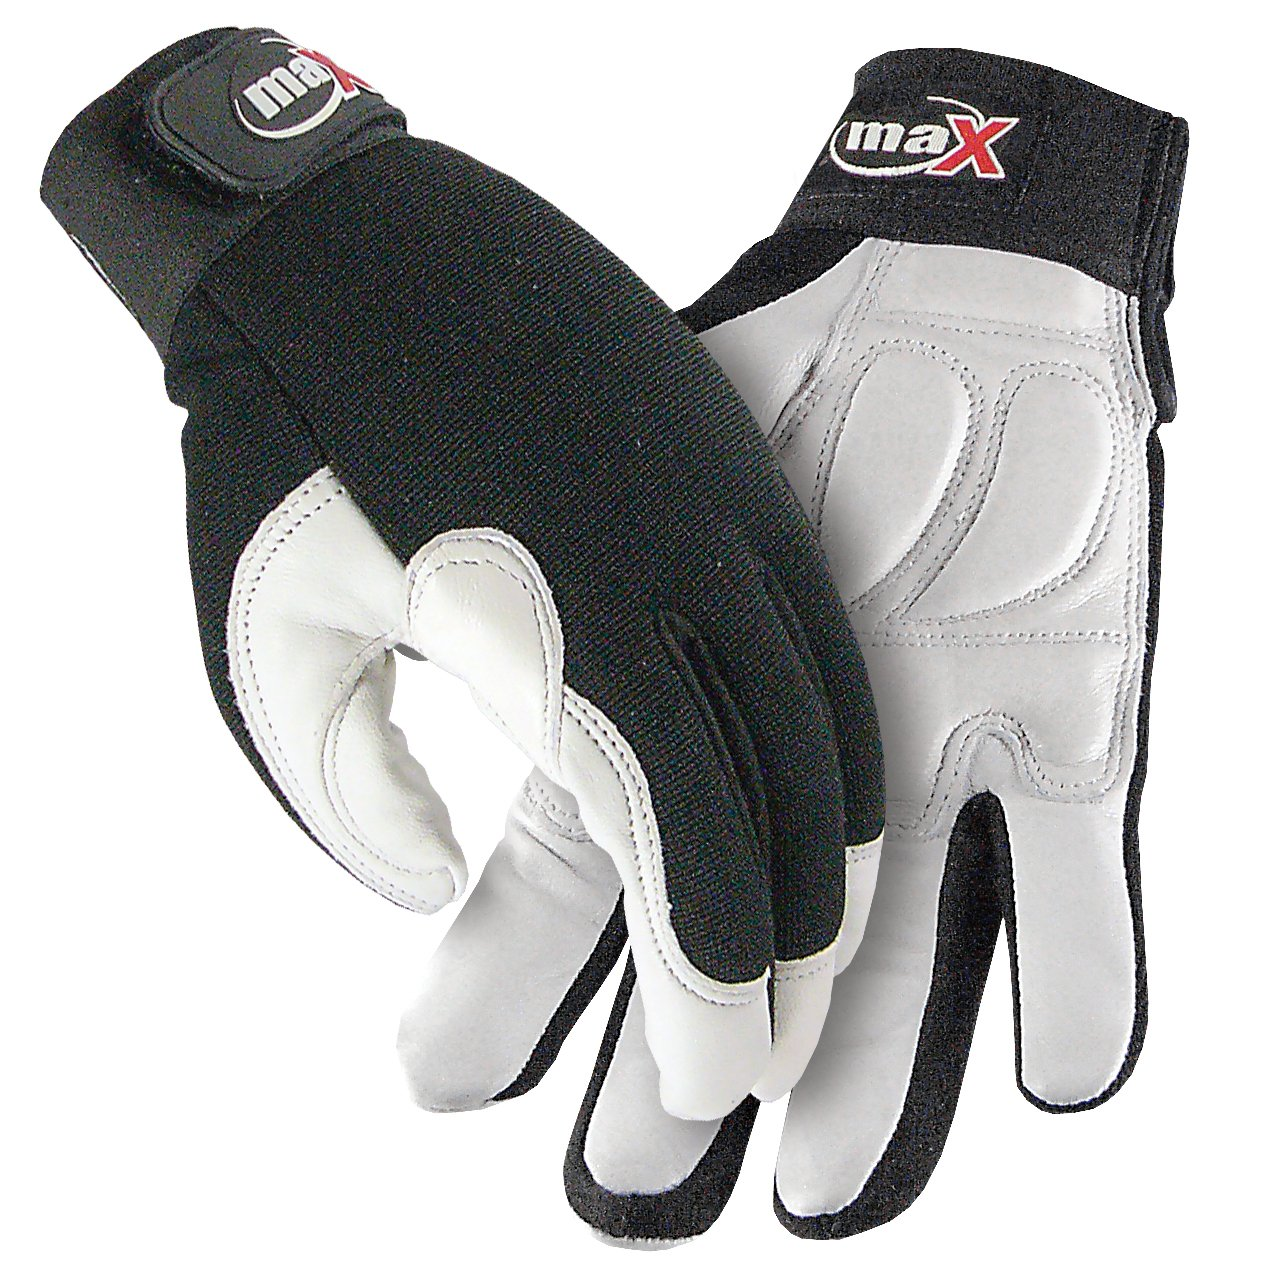 Galeton 9120141-XXL maX Defender Plus Goatskin Rubber Padded Palm Mechanic/Utility Work Gloves, 2X-Large, White/Black